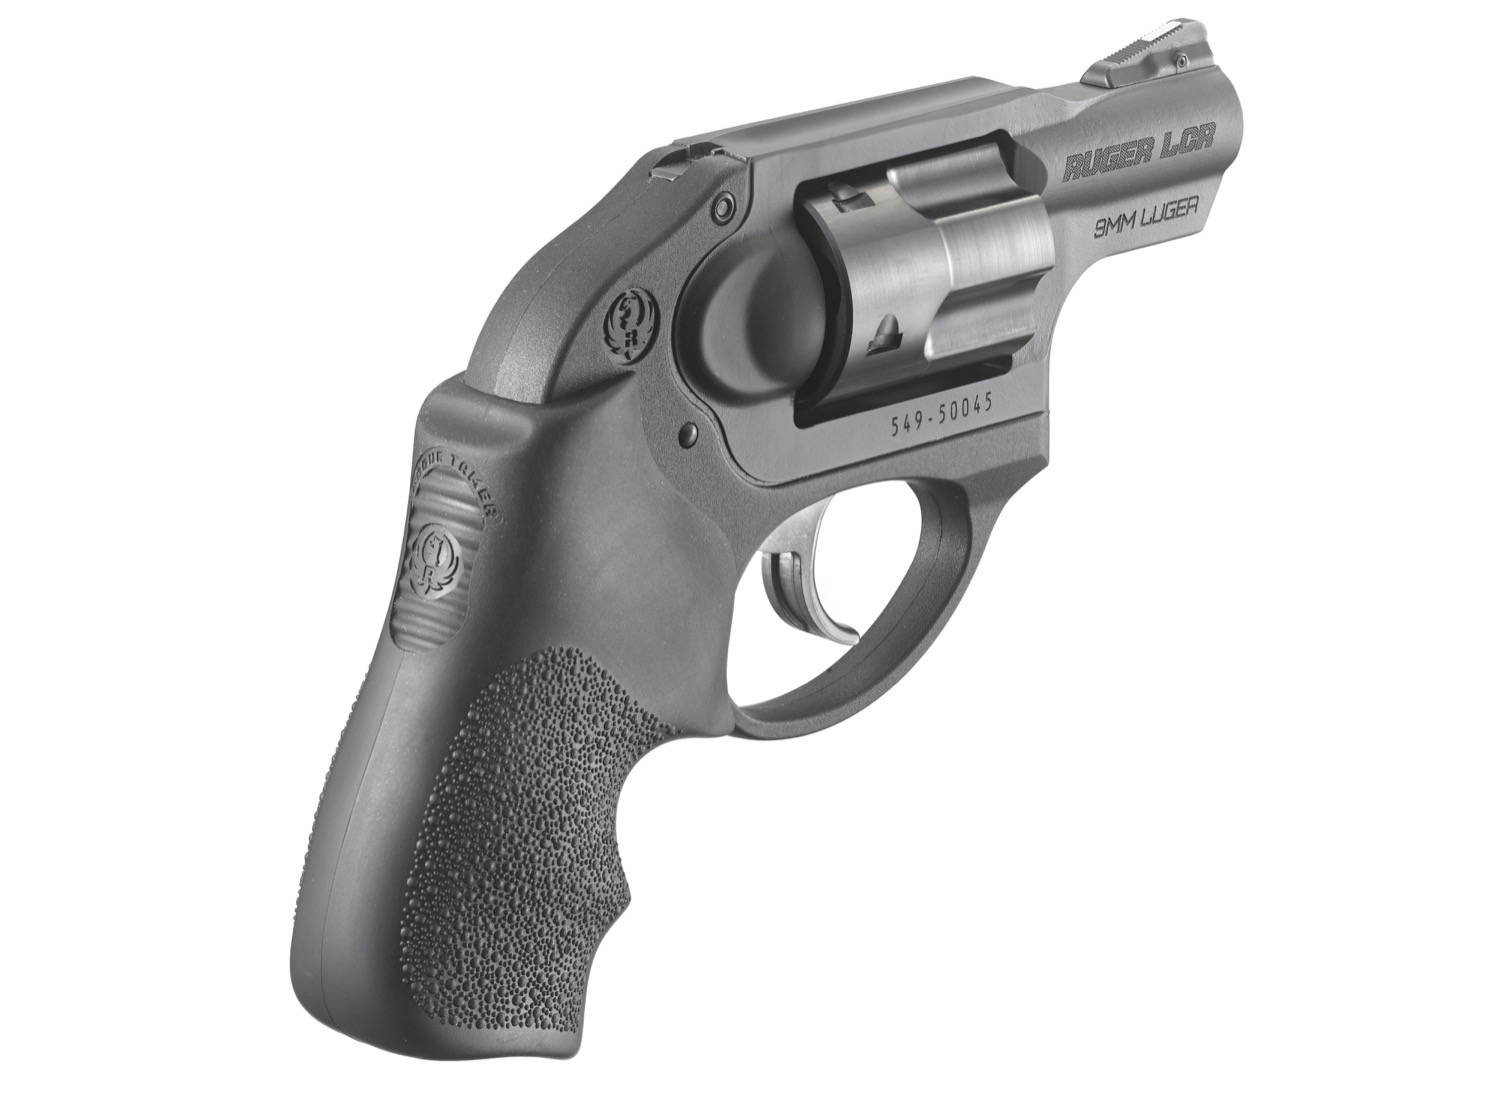 Ruger Lcr Double Action Revolver Model